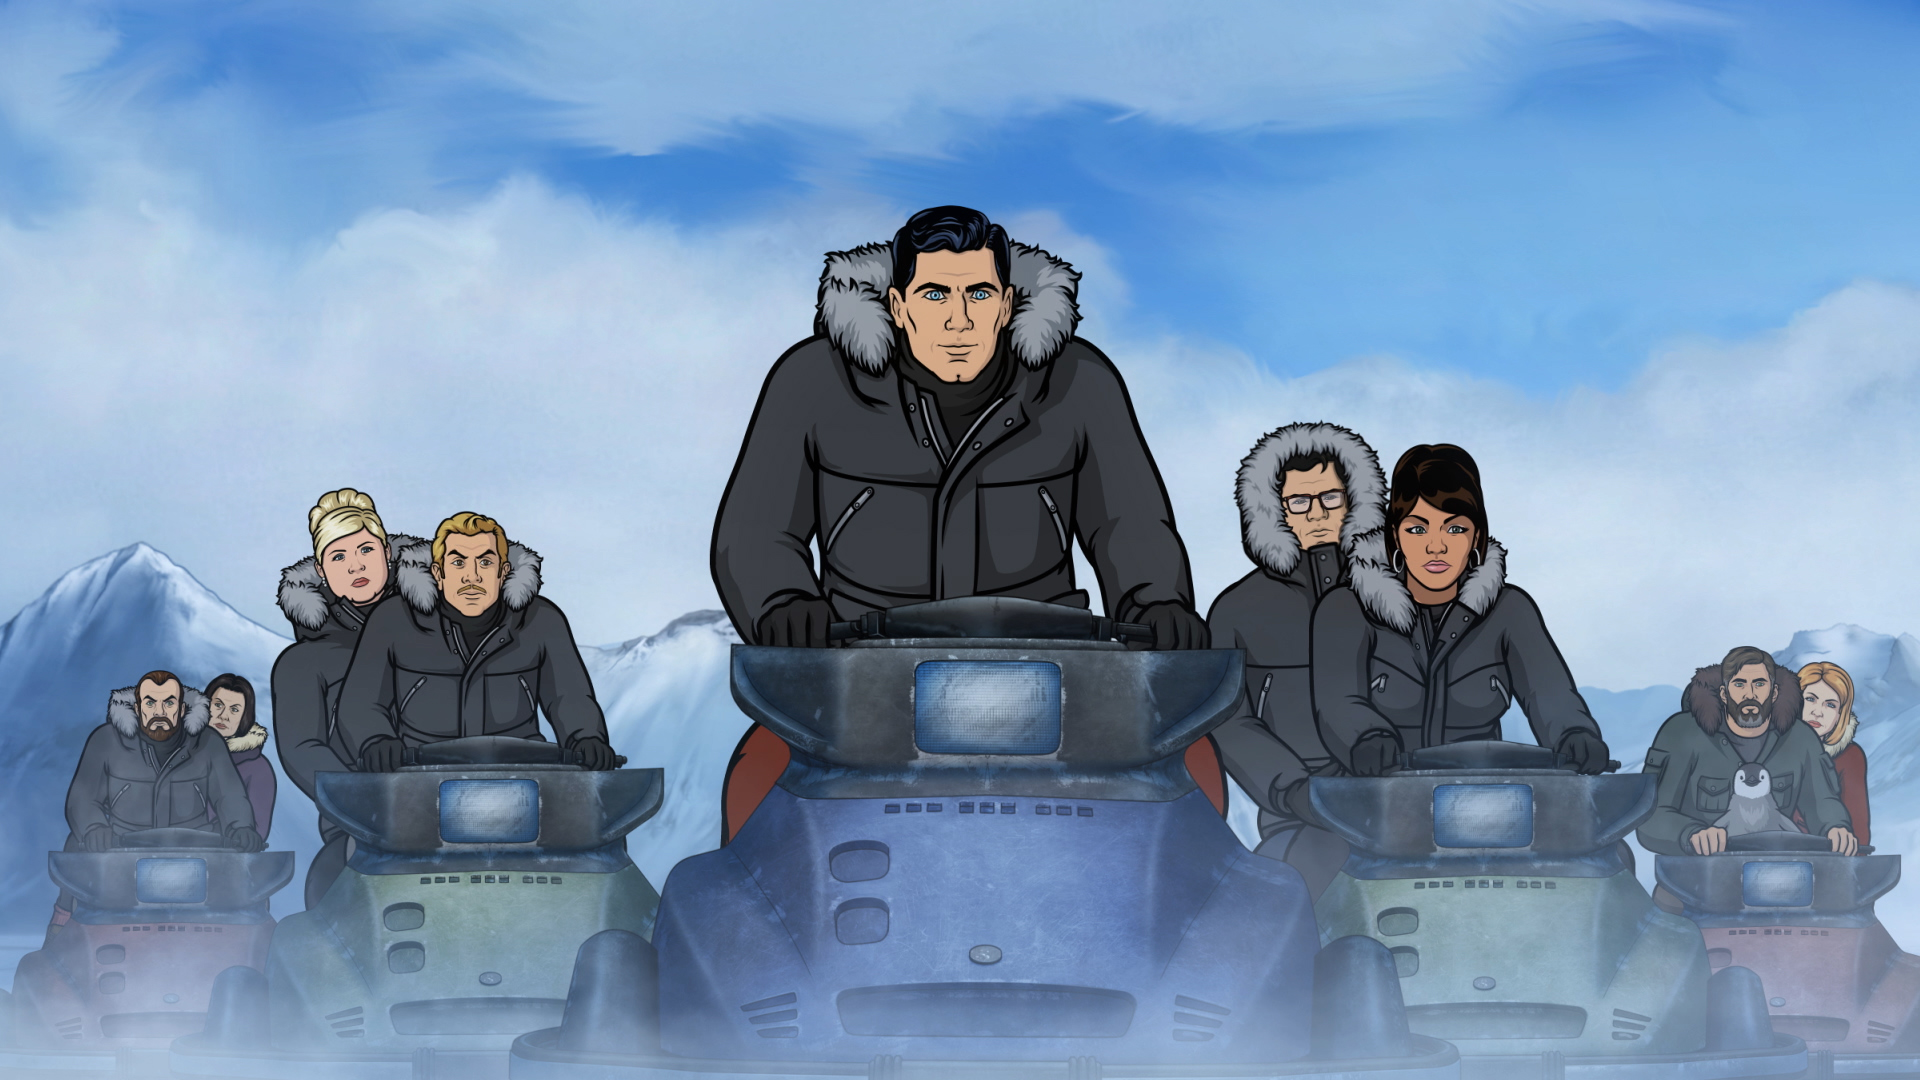 Archer Season 11 Concludes By Saving The World And Returning To Normal